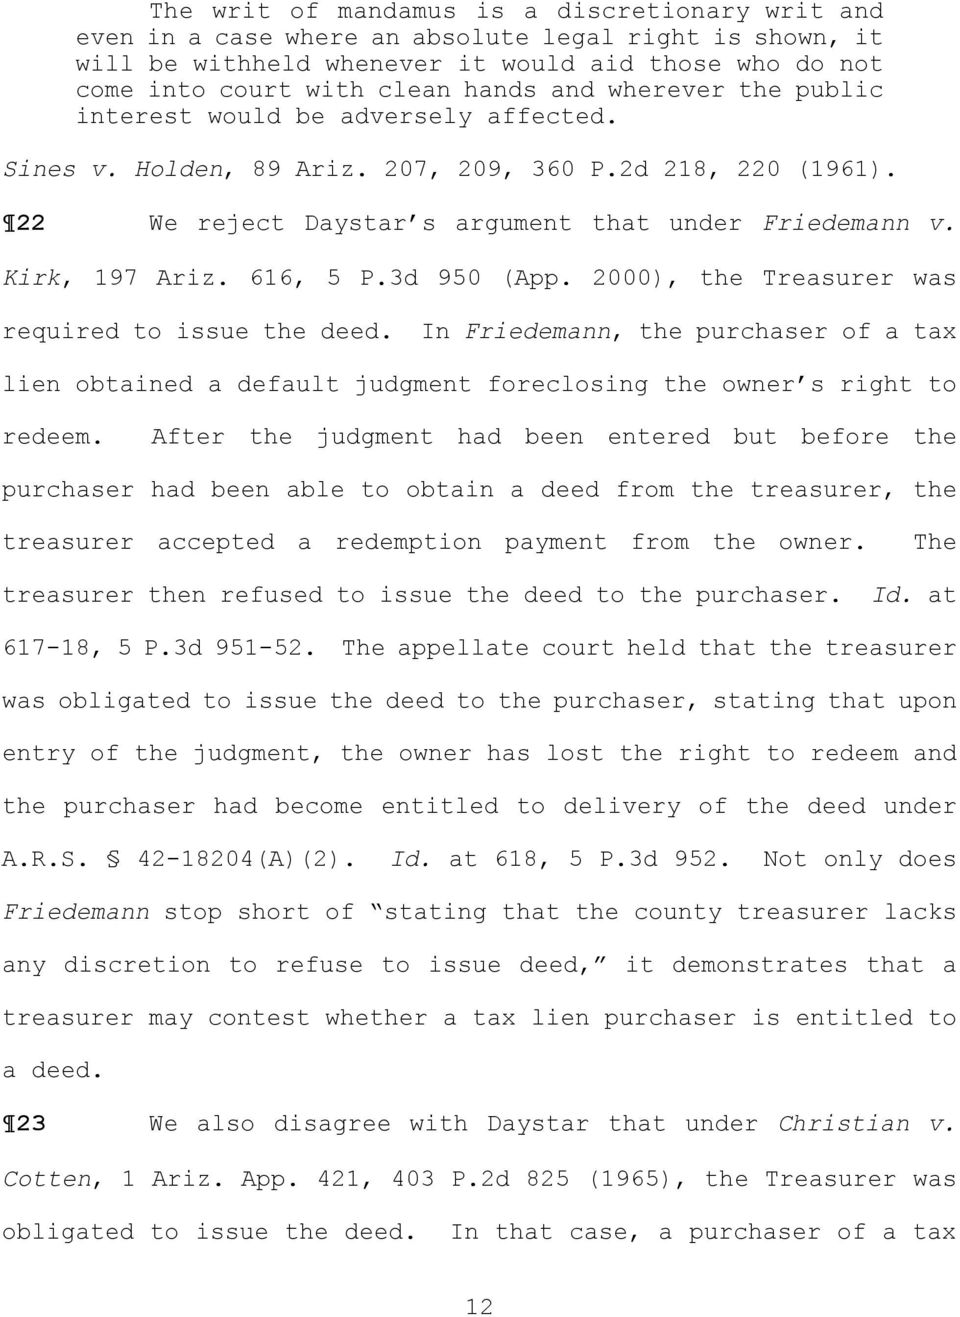 616, 5 P.3d 950 (App. 2000, the Treasurer was required to issue the deed. In Friedemann, the purchaser of a tax lien obtained a default judgment foreclosing the owner s right to redeem.